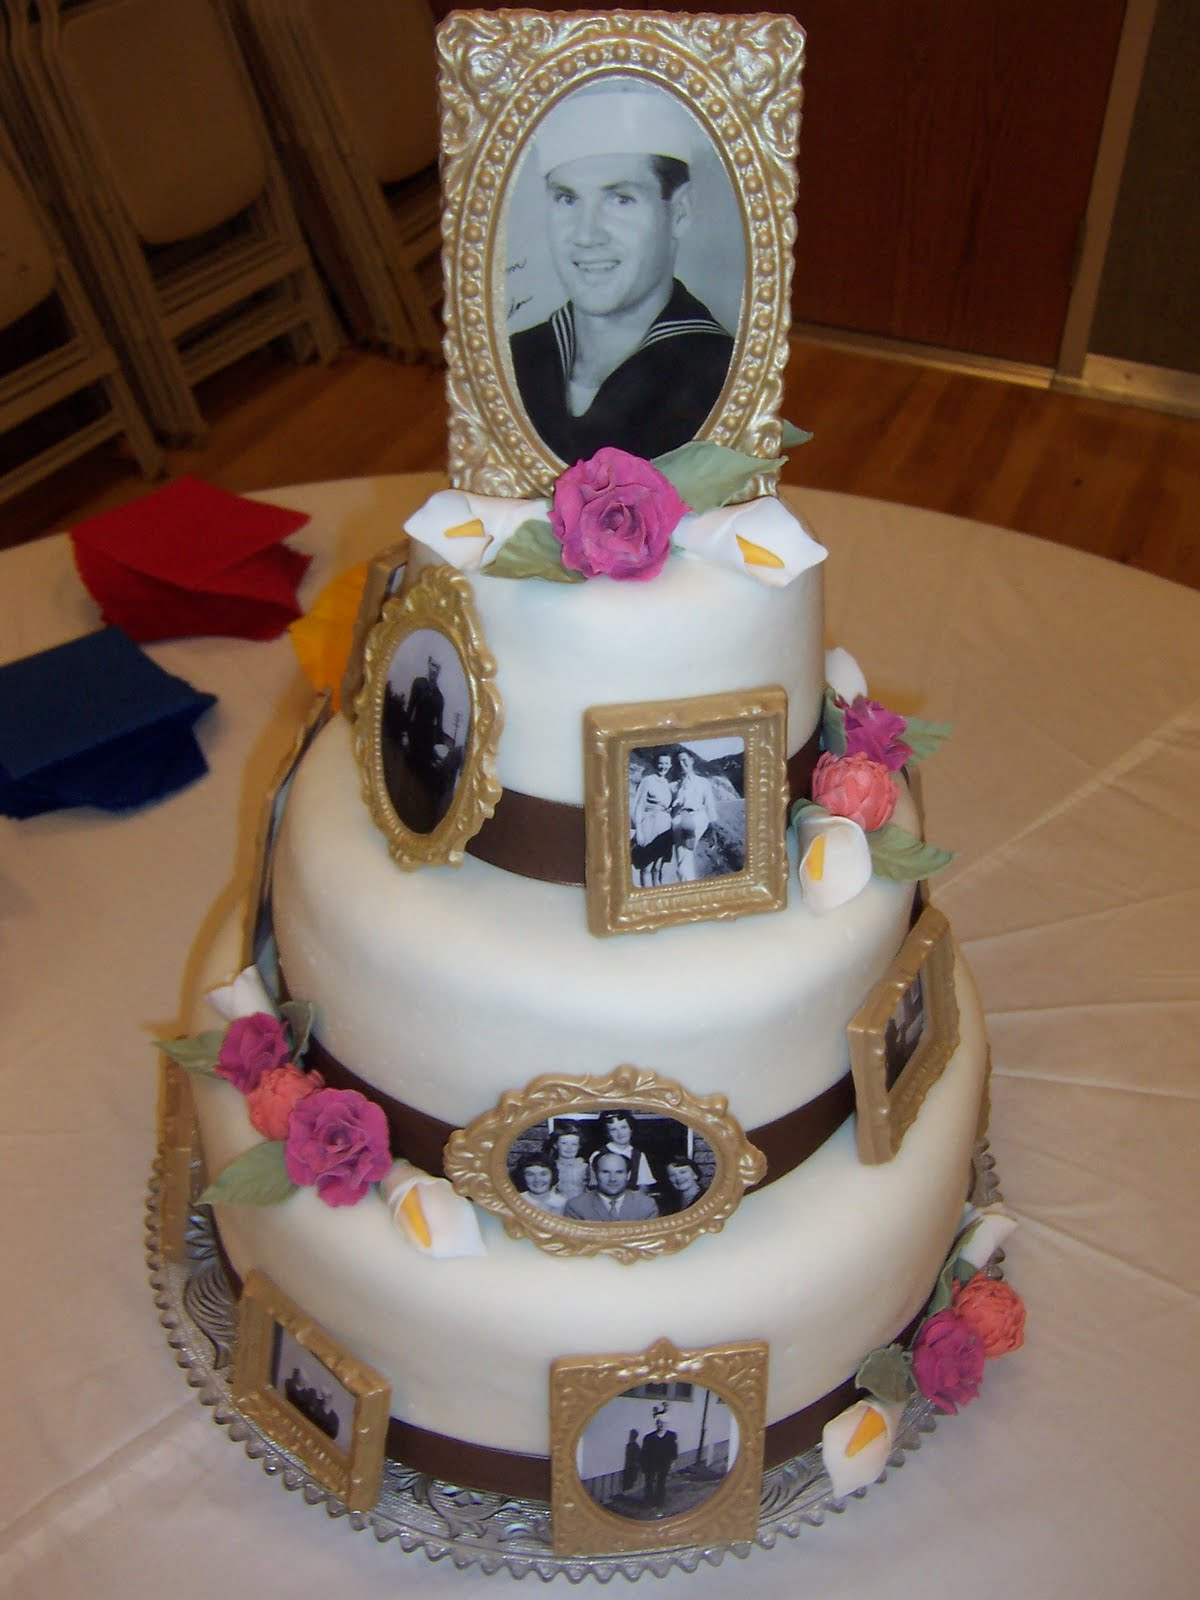 Cake Decorating Ideas For A 90 Year Old : Amber s Birthday Creations: Grandpa s 90th Birthday Cake/Party